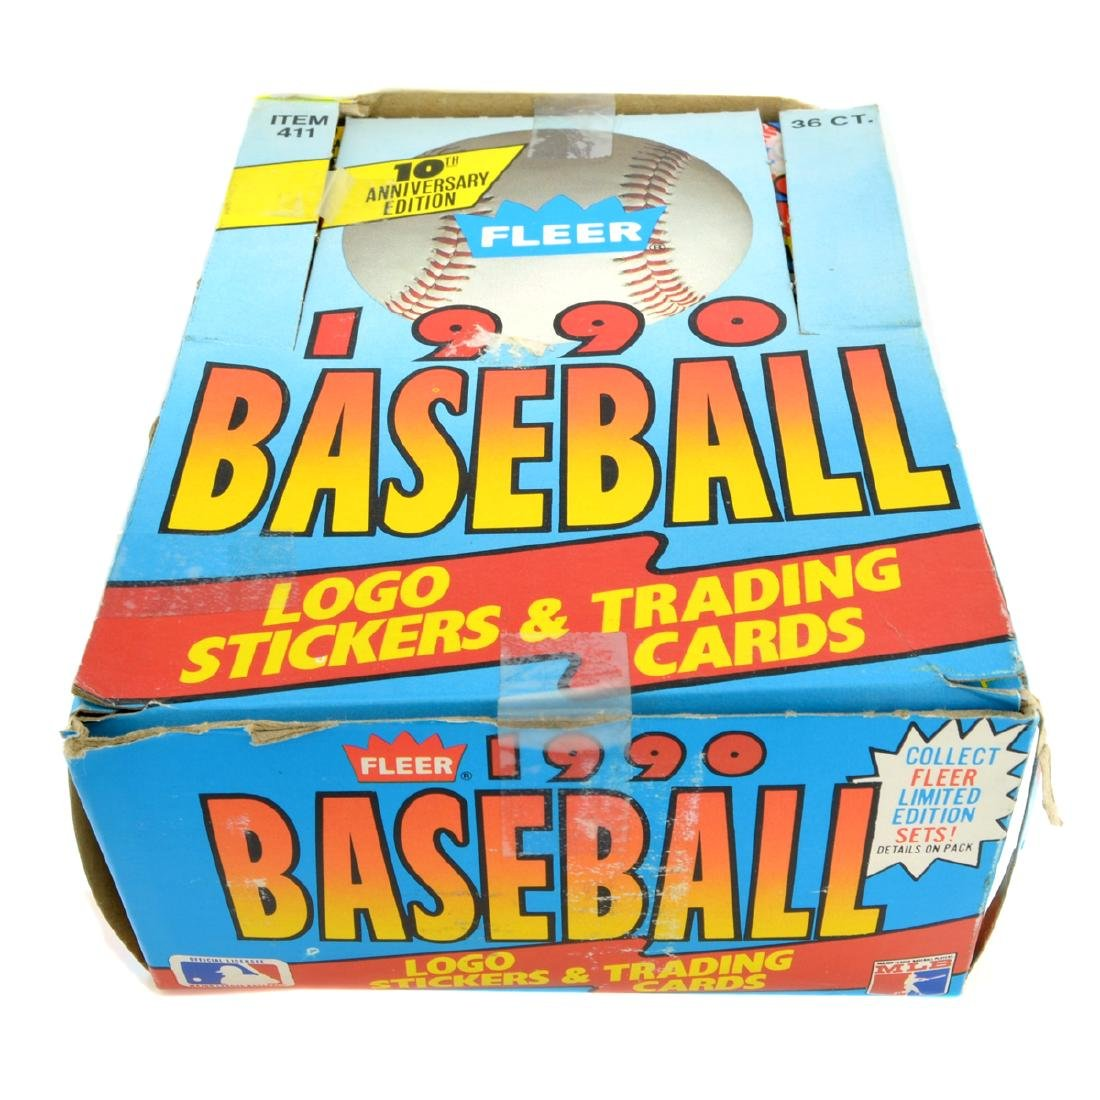 Limited Edition 1900 Fleer Baseball Card Set